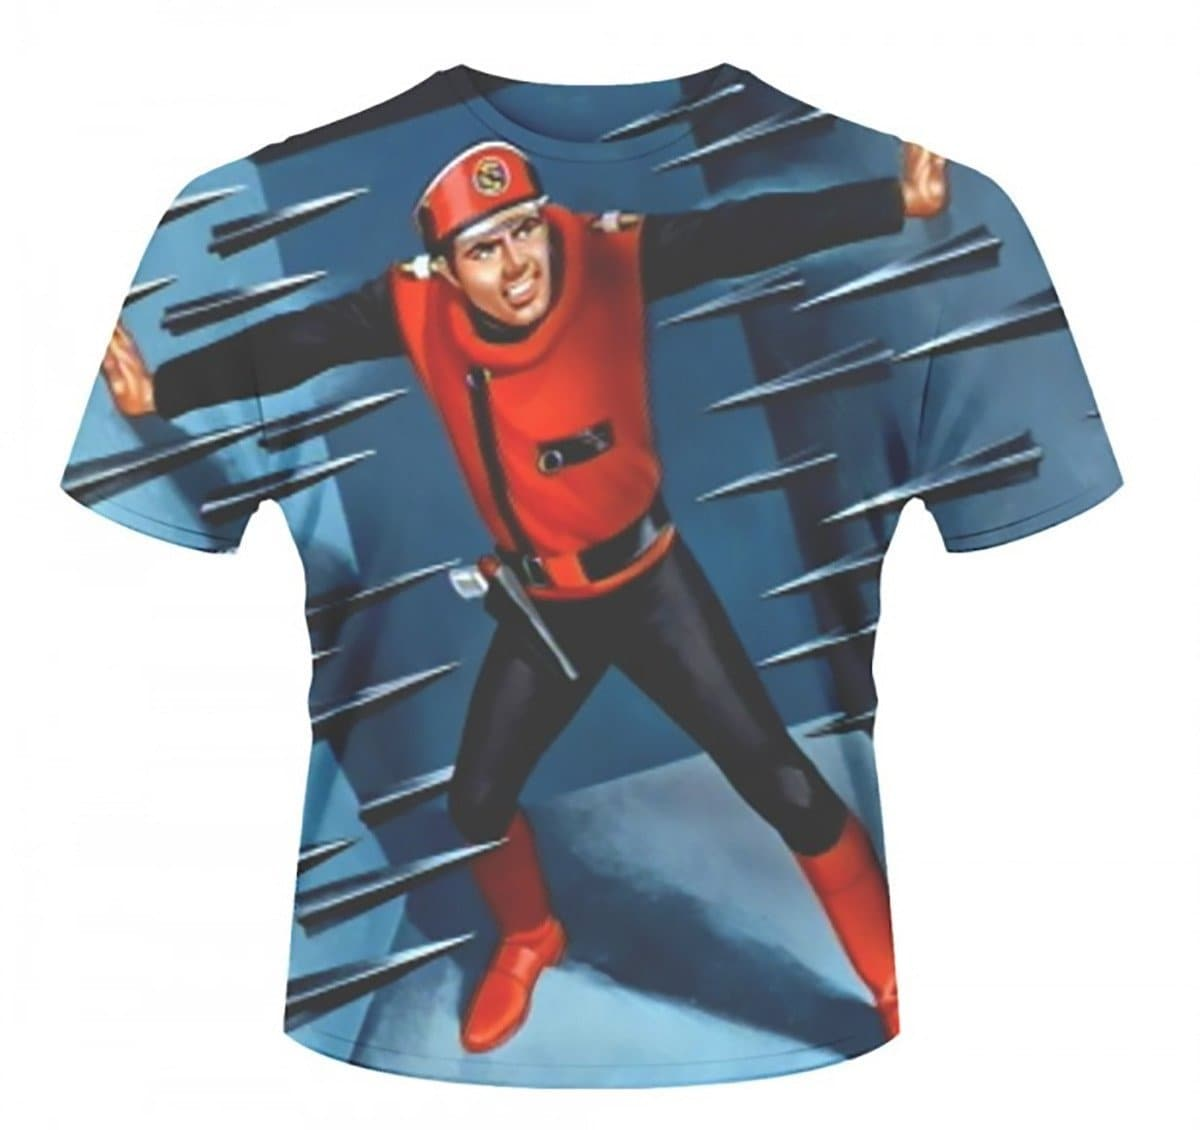 Captain Scarlet Spikes T-Shirt - Gerry Anderson Official